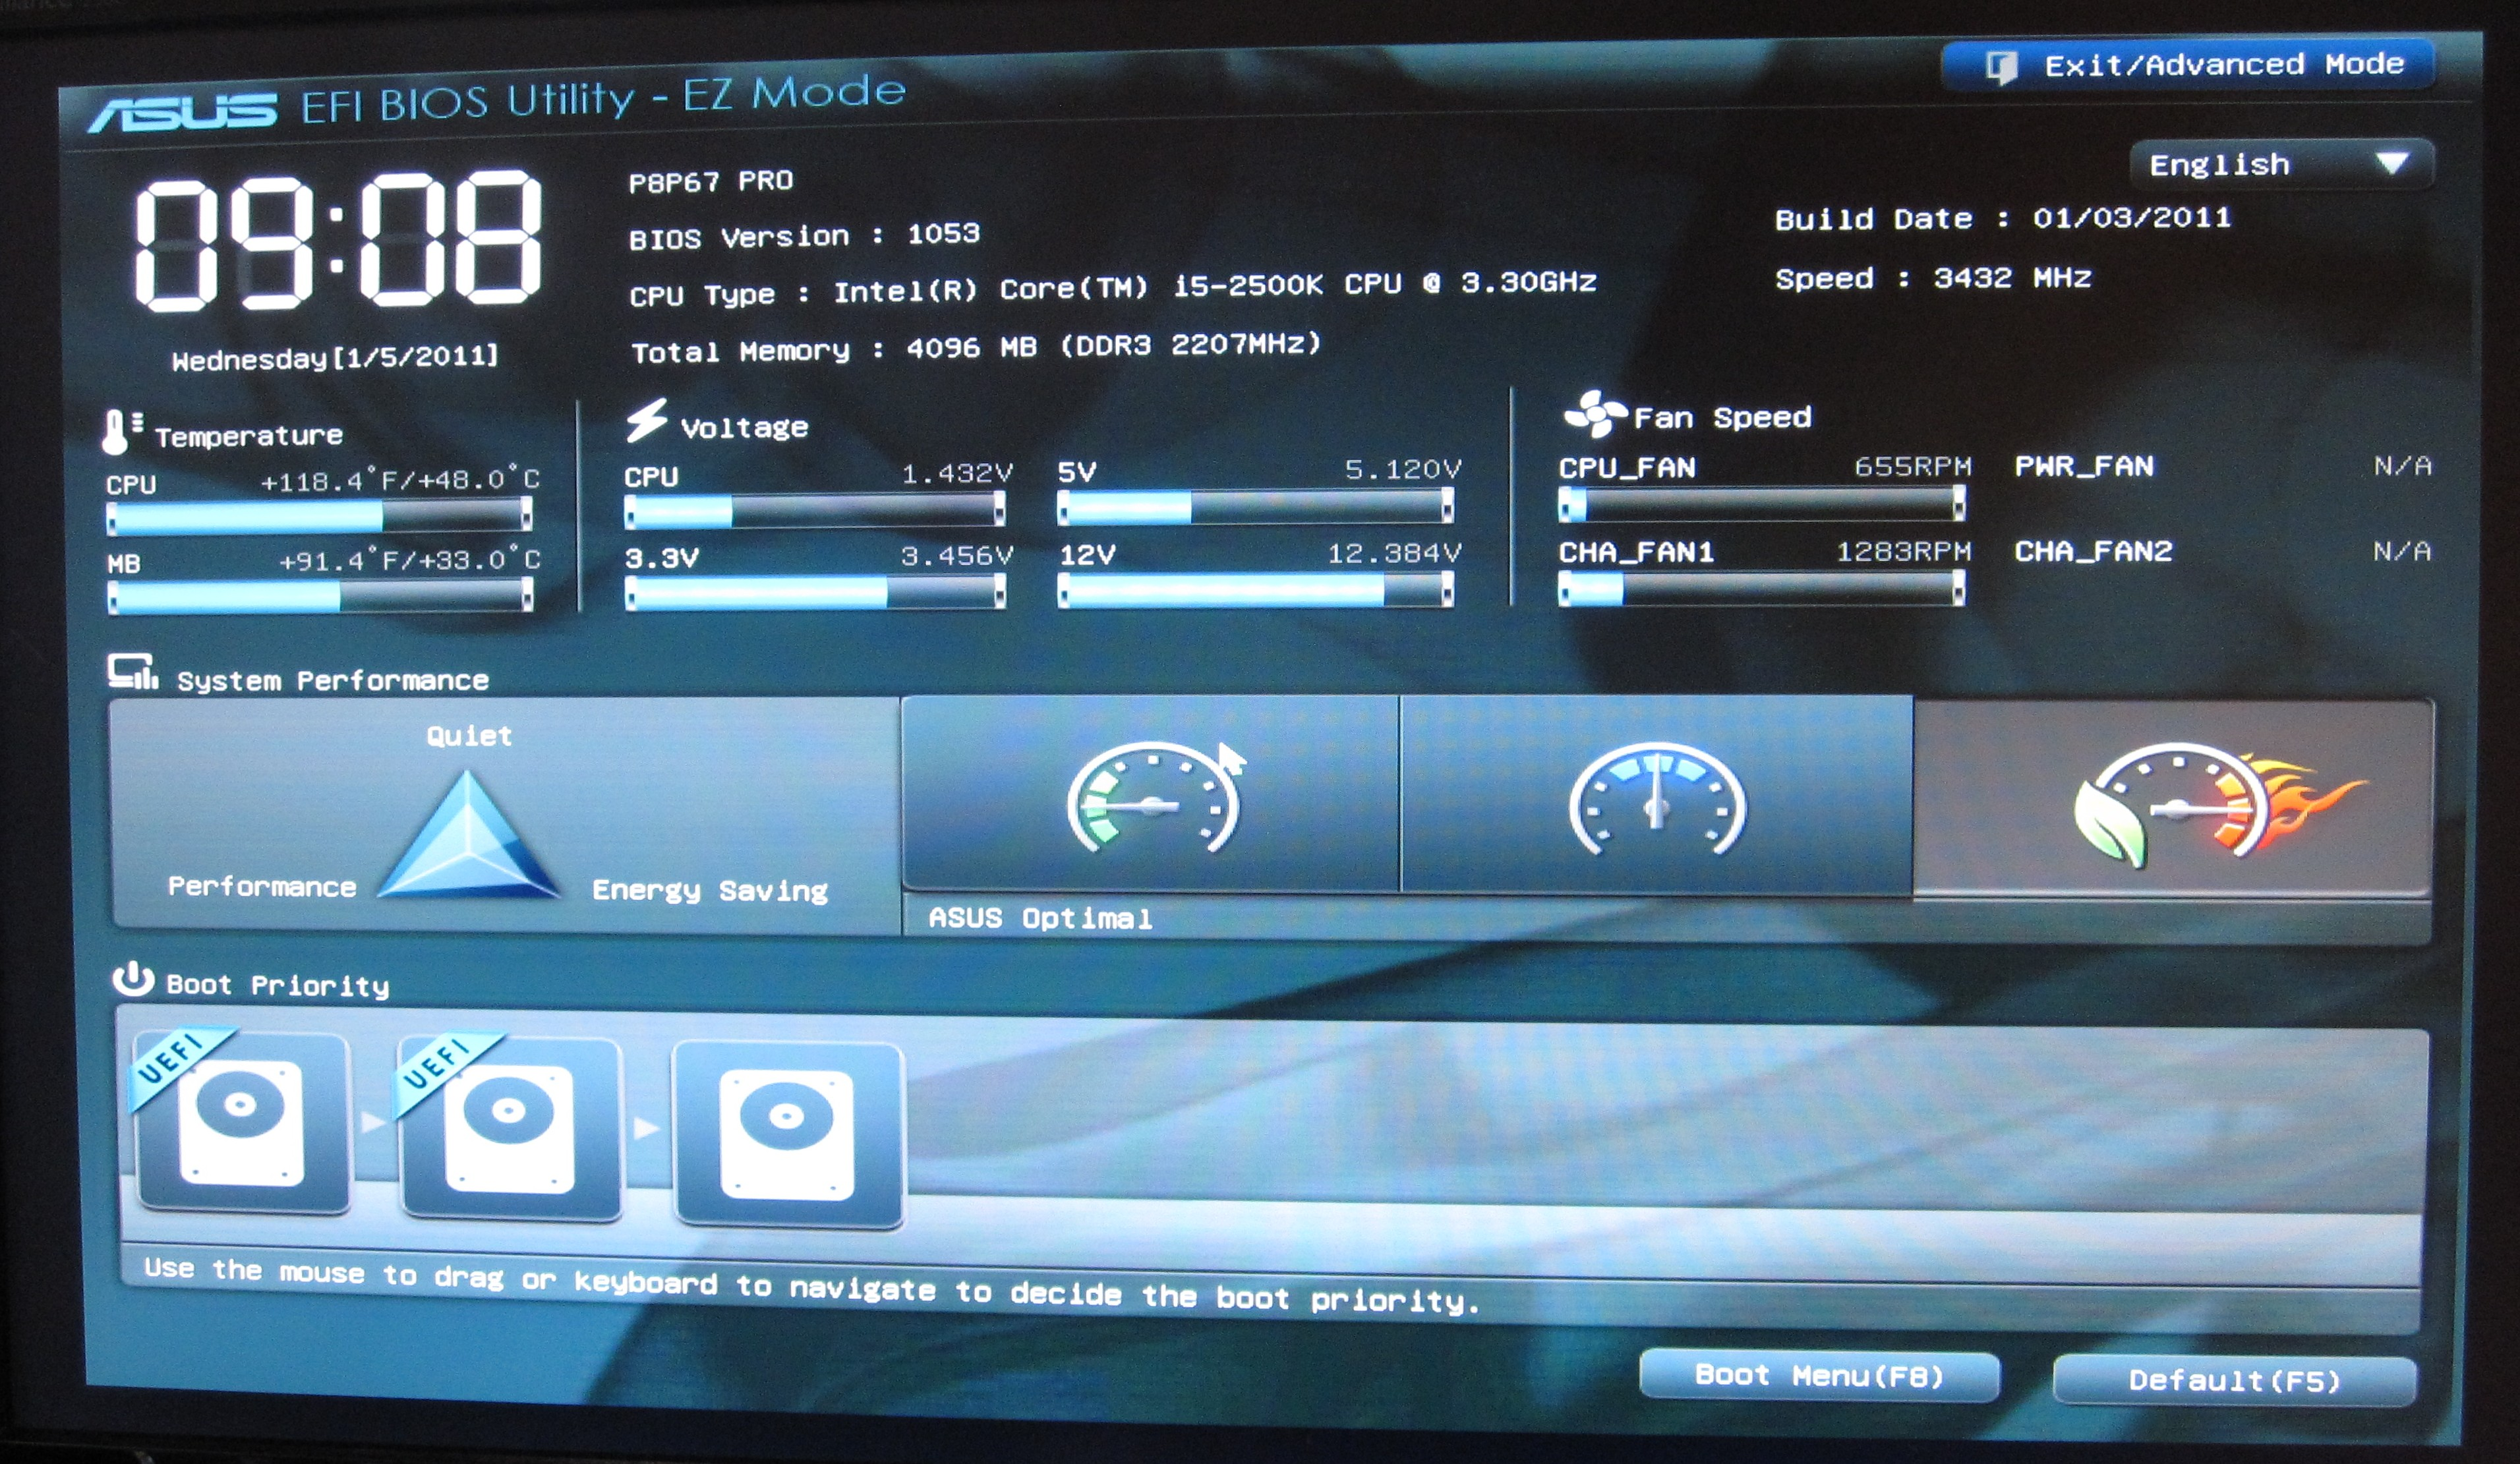 Asus P8p67 Pro Uefi Overclocking The Battle Of The P67